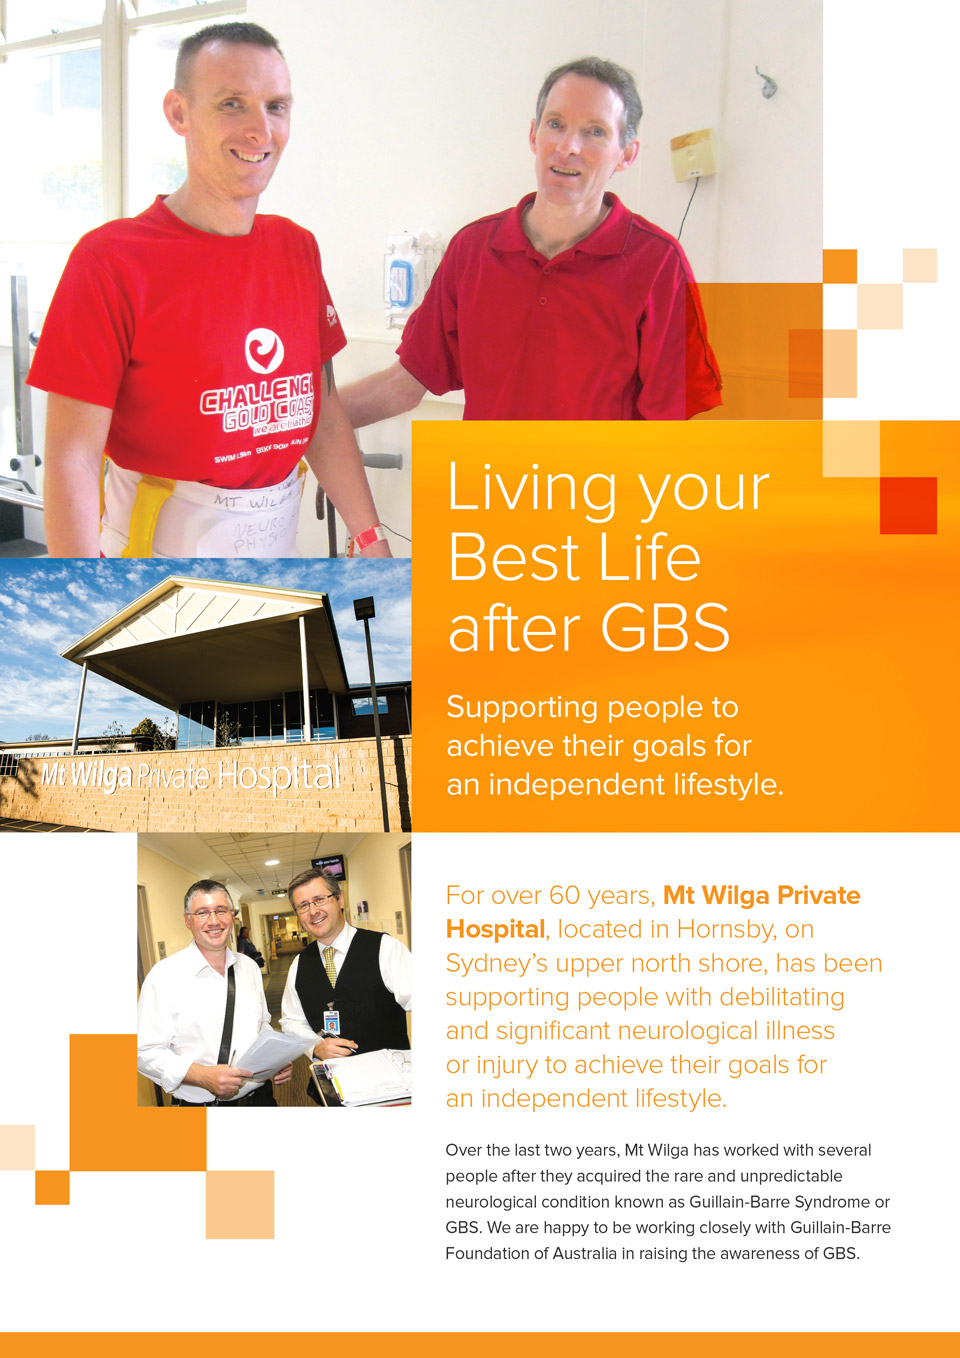 mwph-living-your-best-life-after-gbs-1